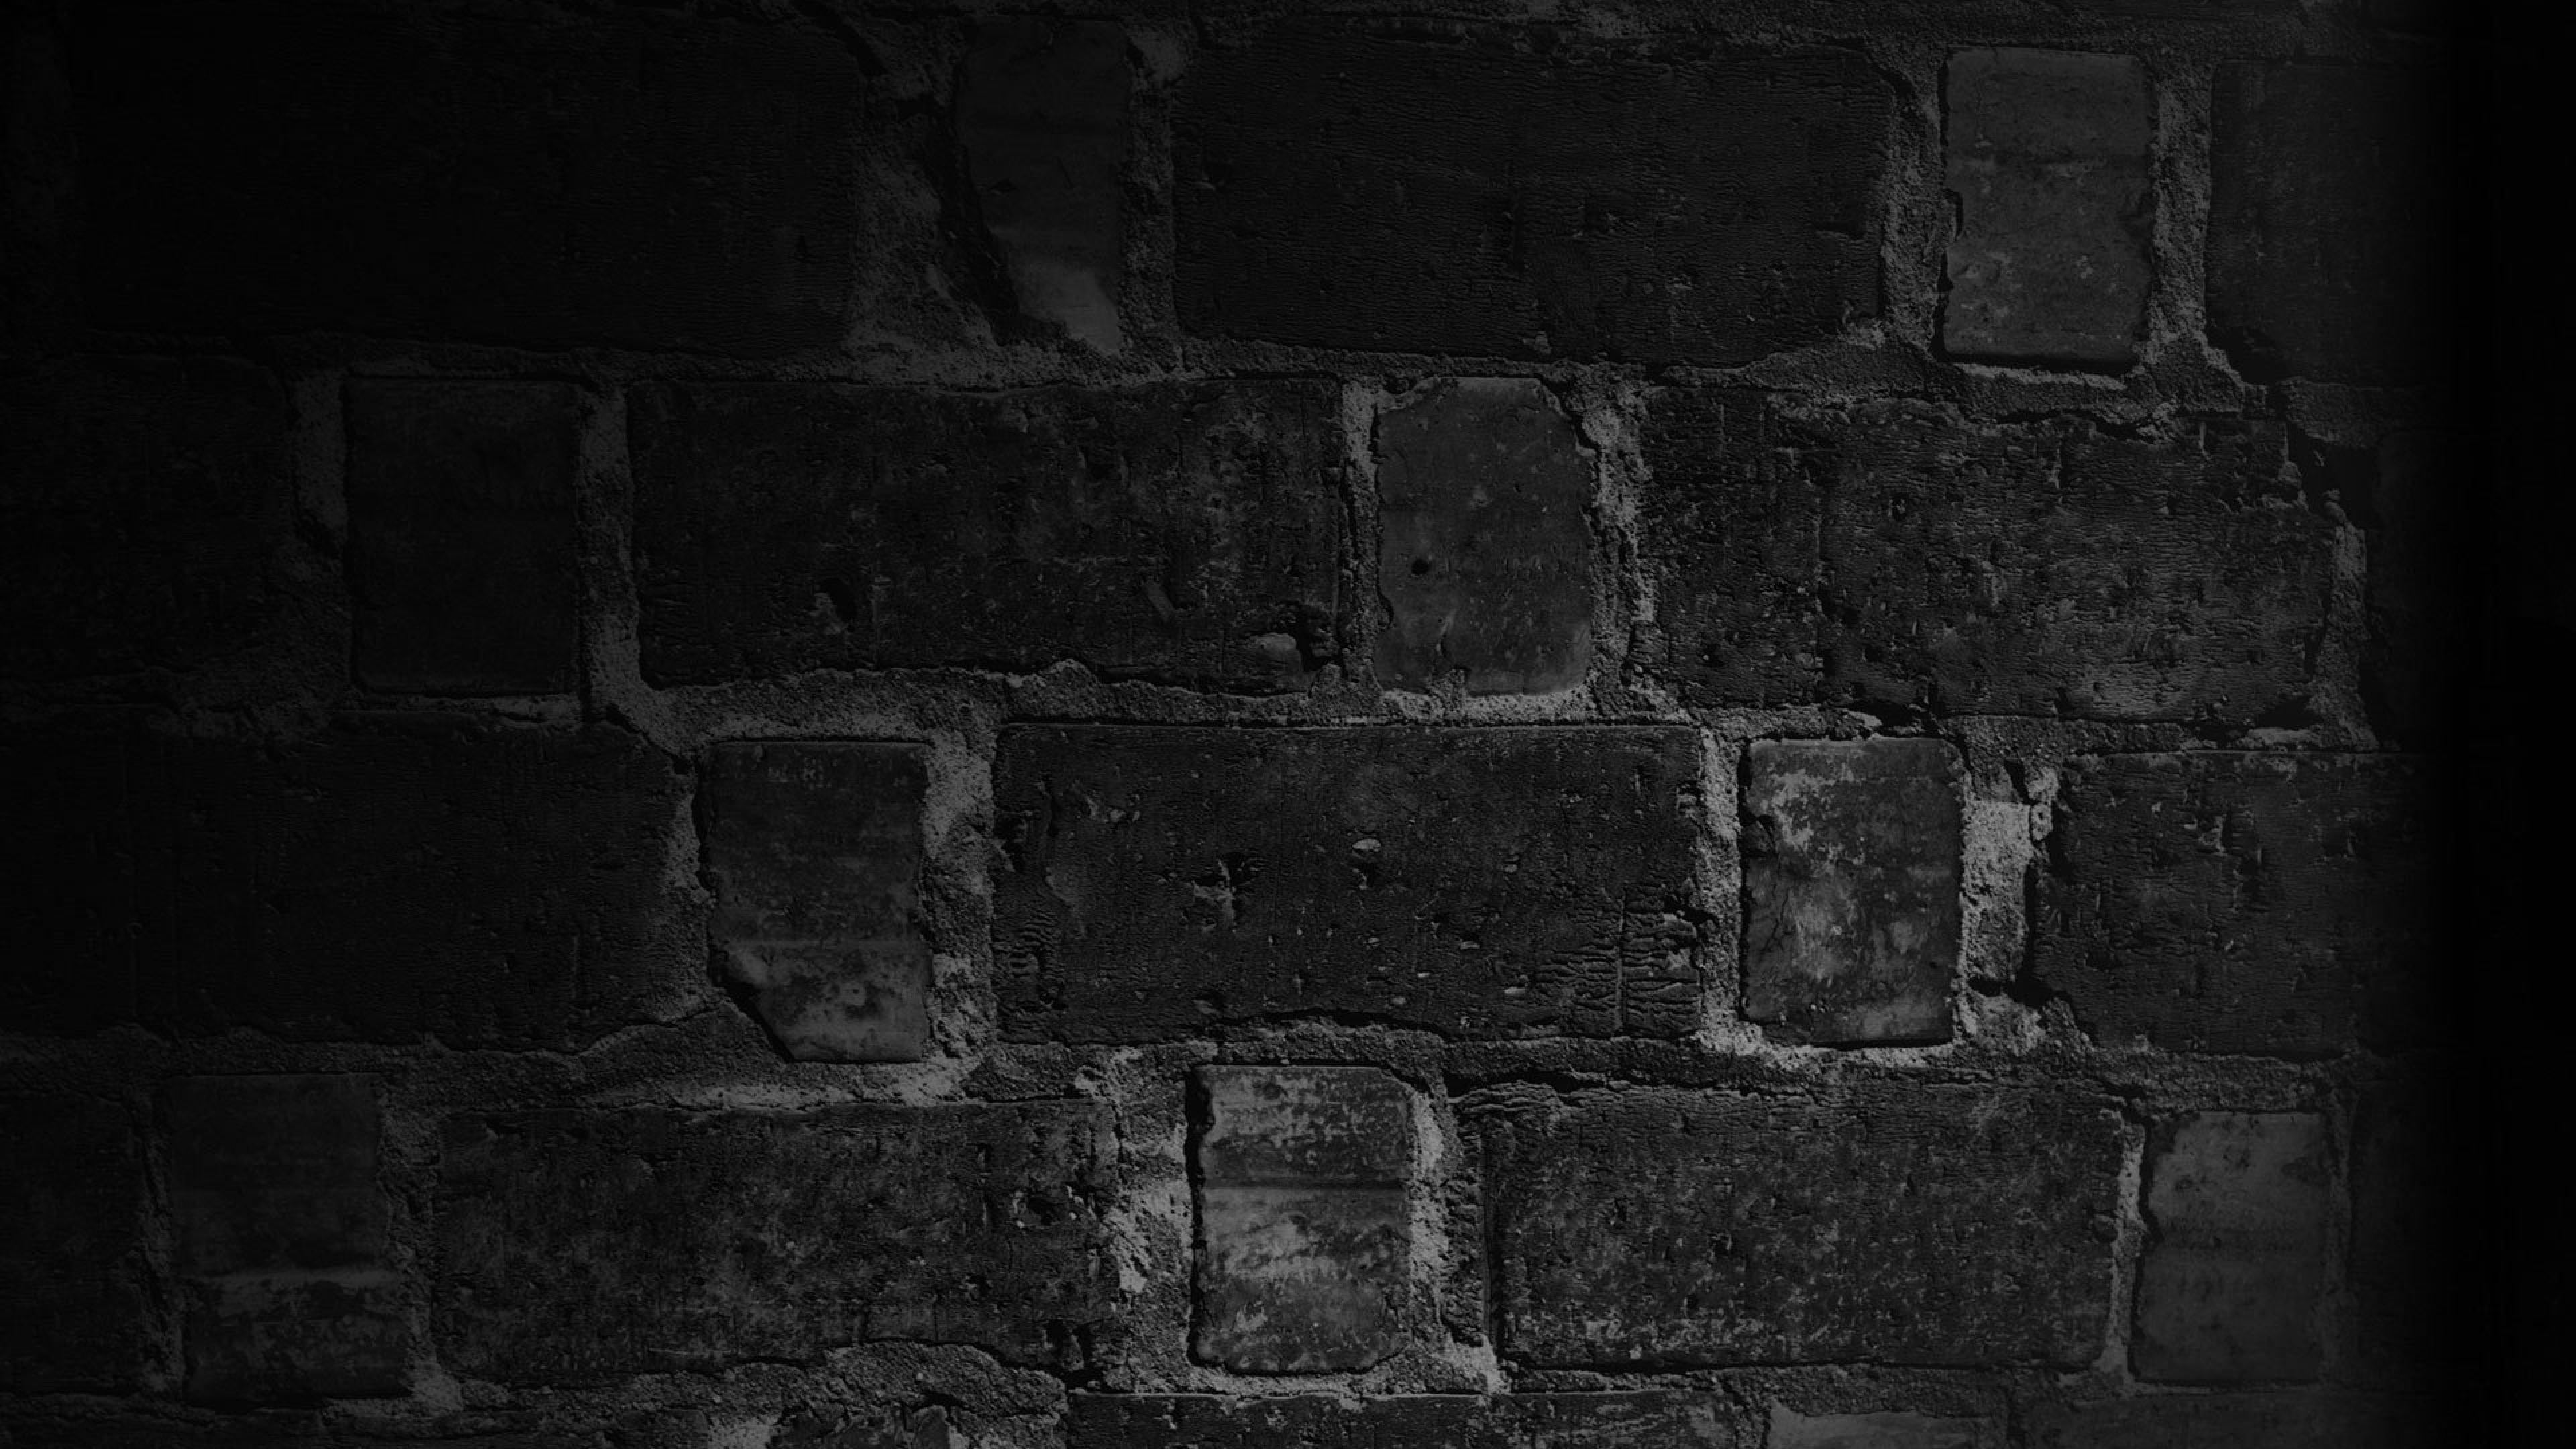 Black And White Wall Brick Texture Shadow WallpapersByte com 3840x2160 3840x2160